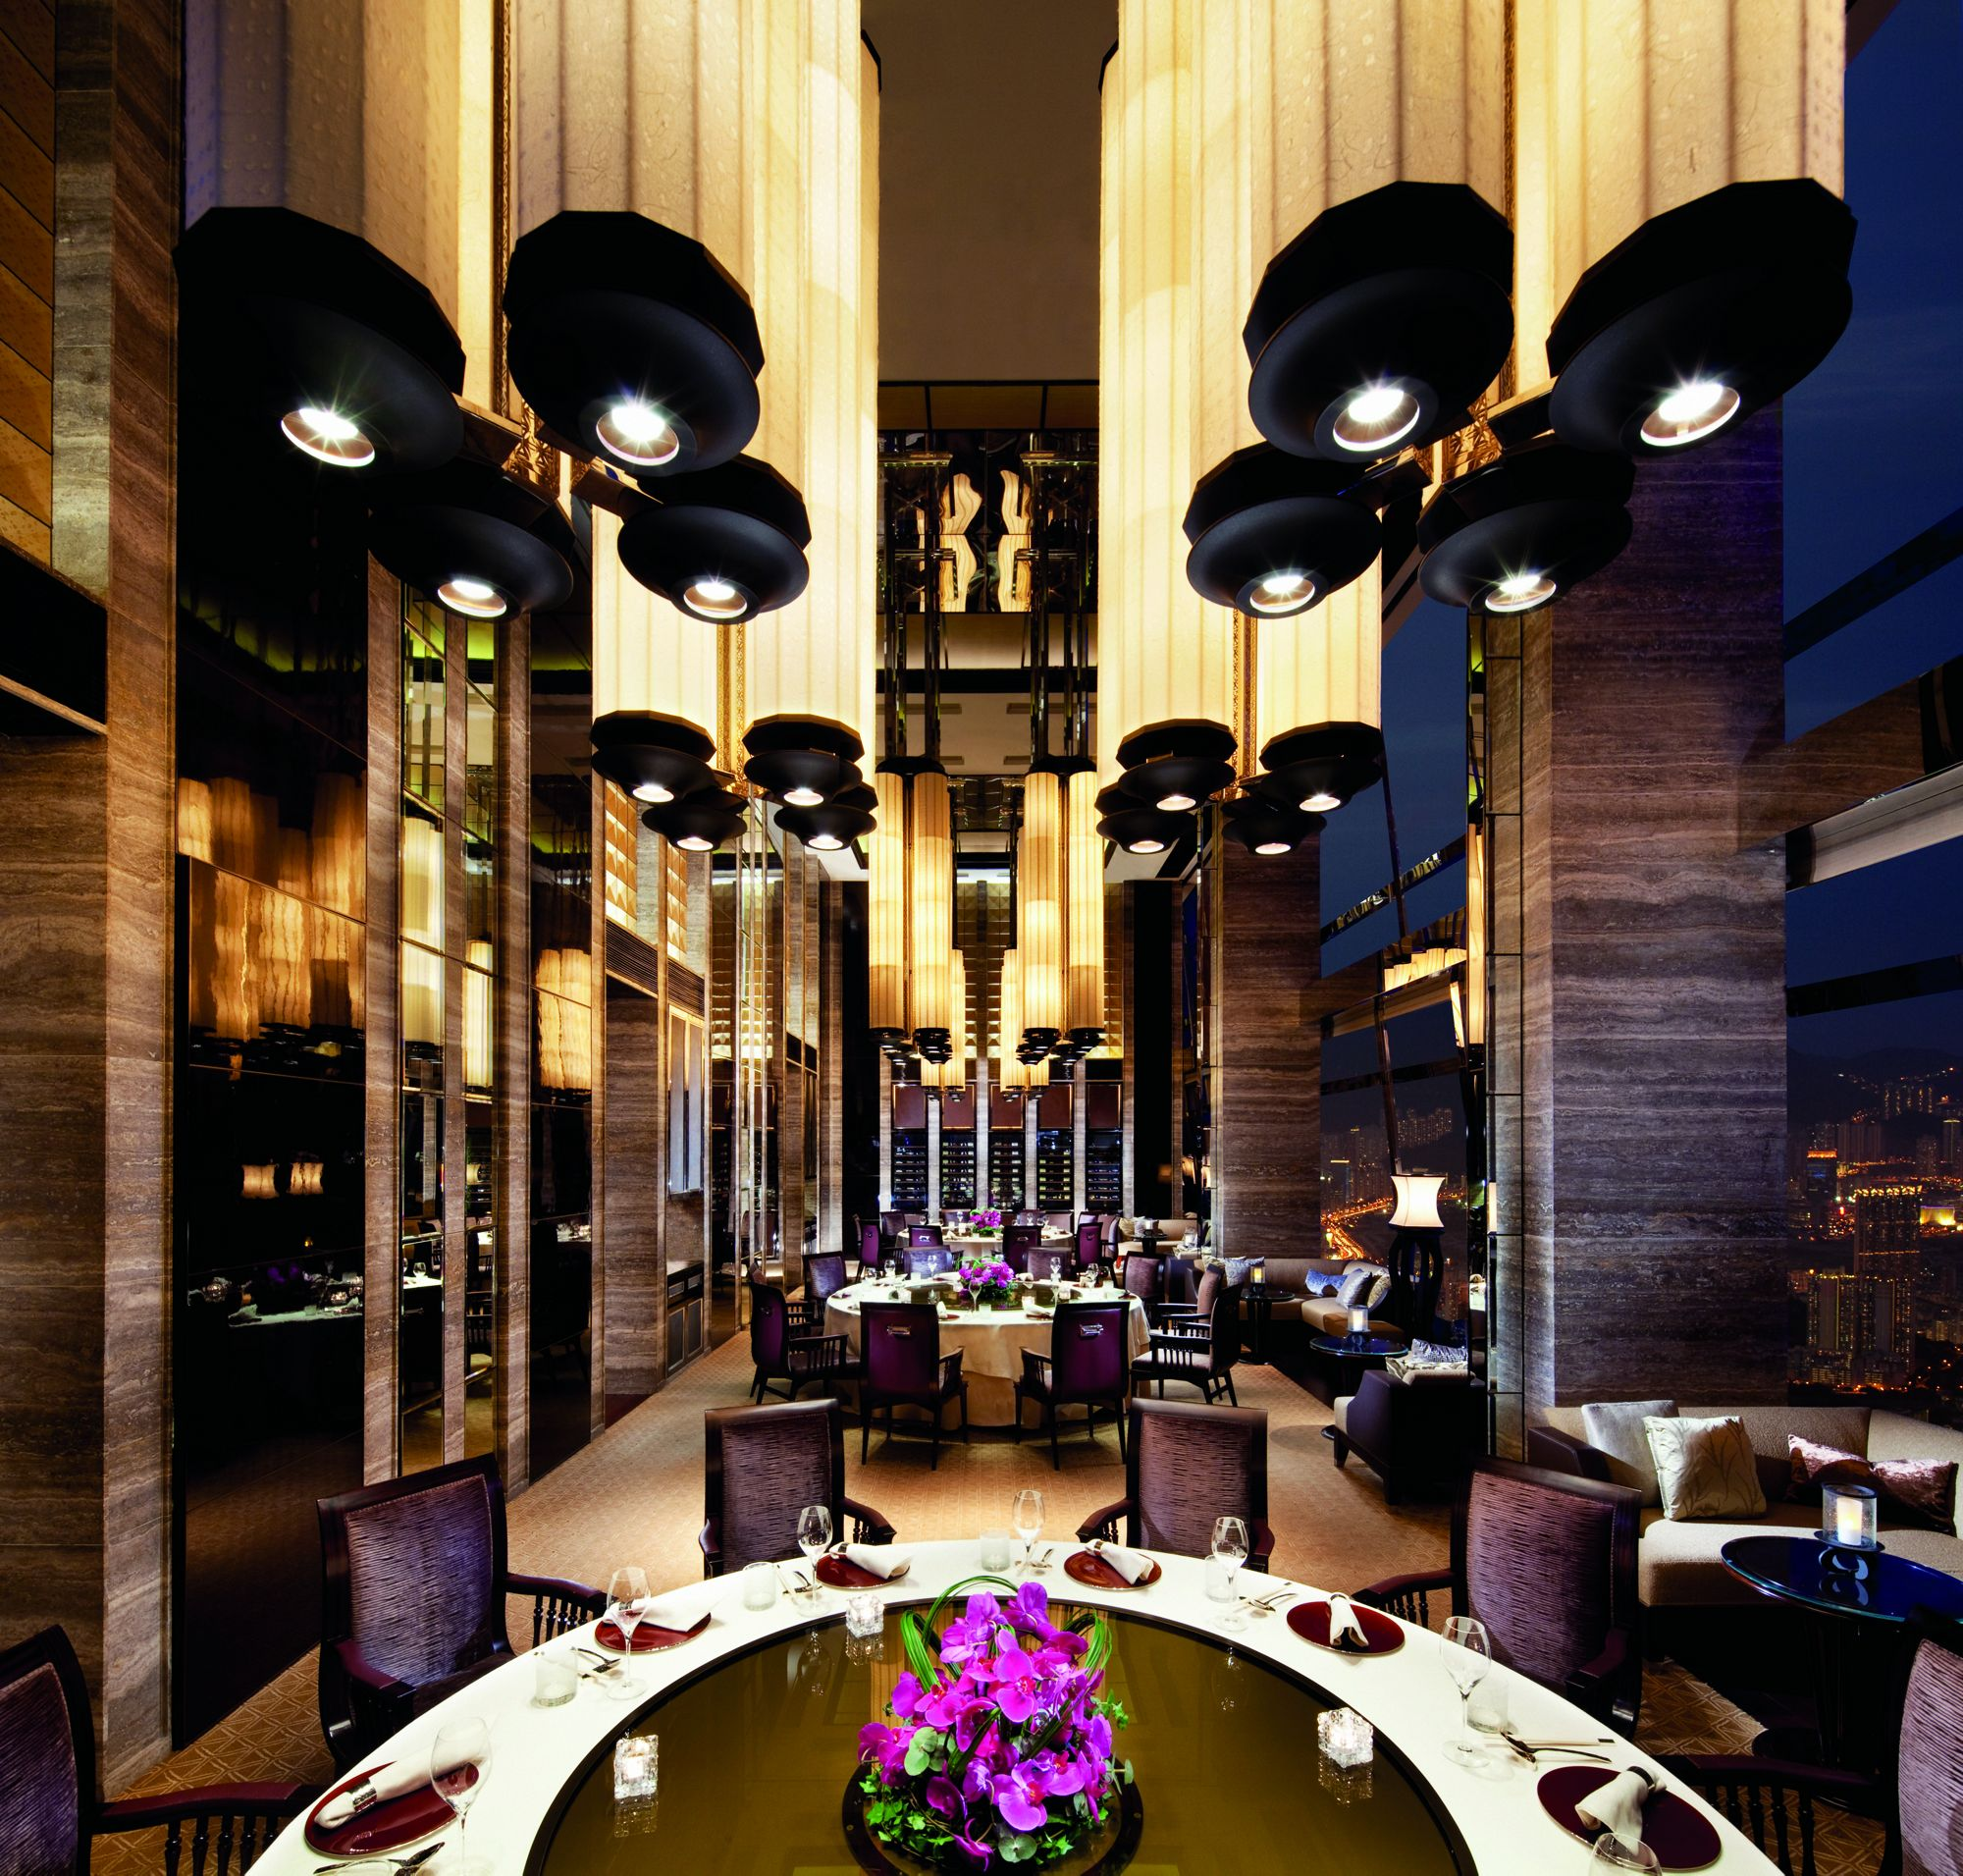 best restaurants in hong kong - tin lung heen restaurant ritz carlton hong kong - art basel hong kong - beautiful restaurants hong kong best restaurants in hong kong 10 Best Restaurants in Hong Kong for Great Design & Delicious Victuals tin lung heen restaurant ritz carlton hong kong